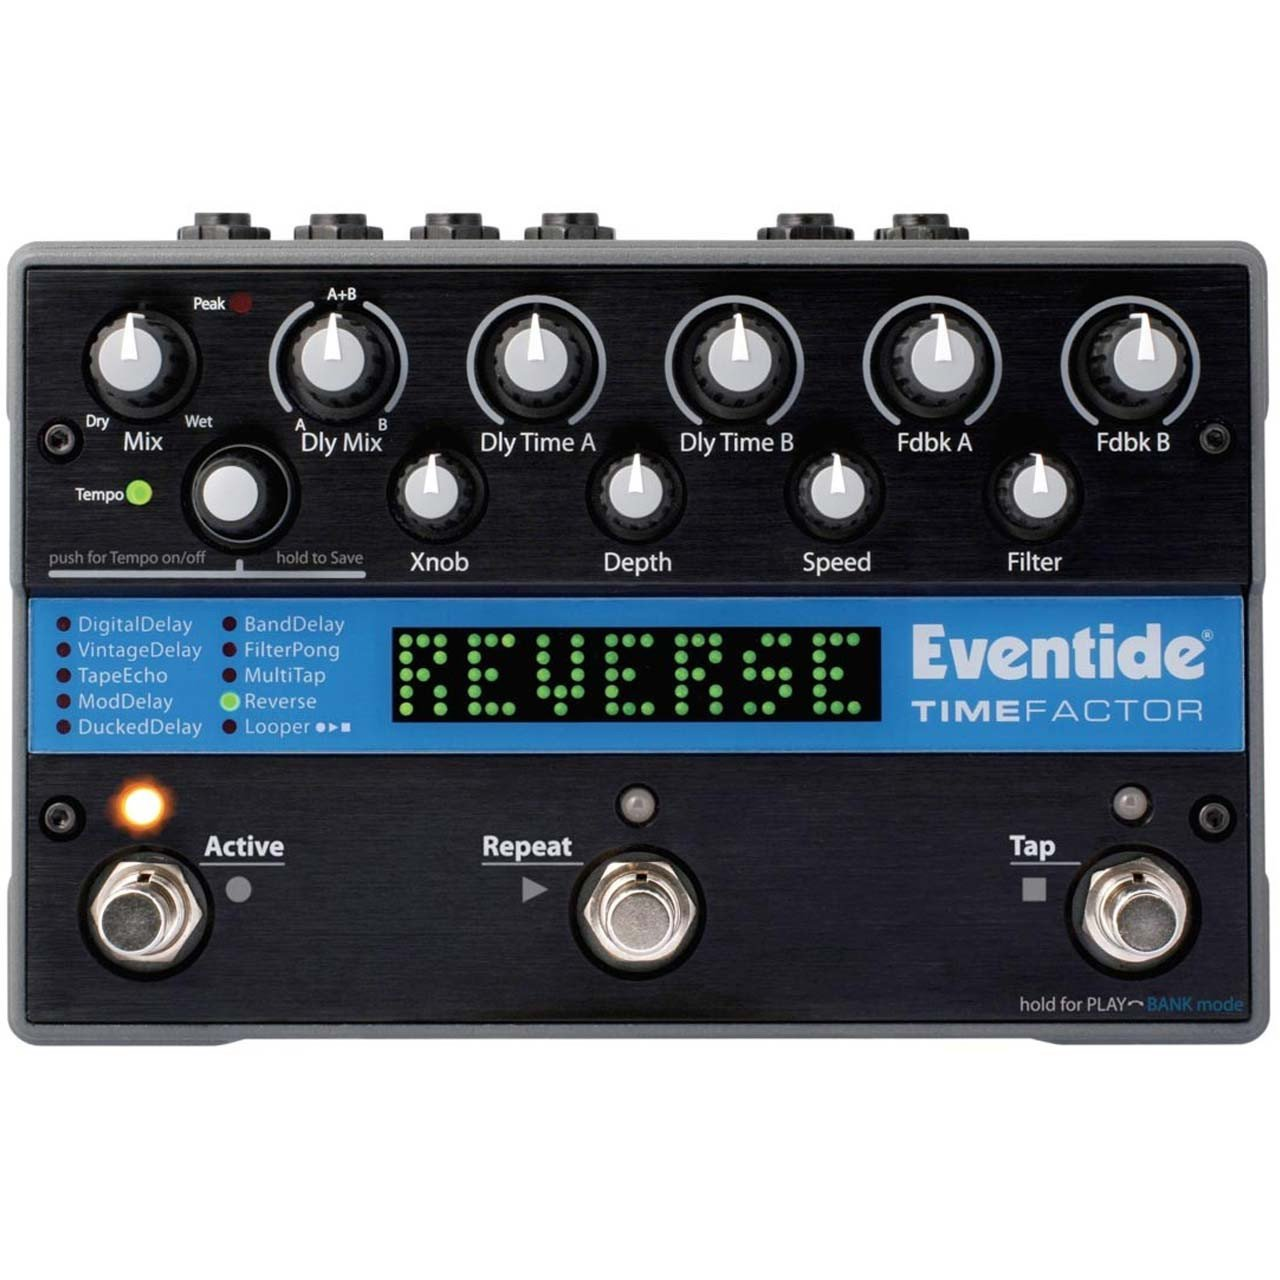 Pedals & Effects - Eventide TimeFactor - Delay Effects Processor